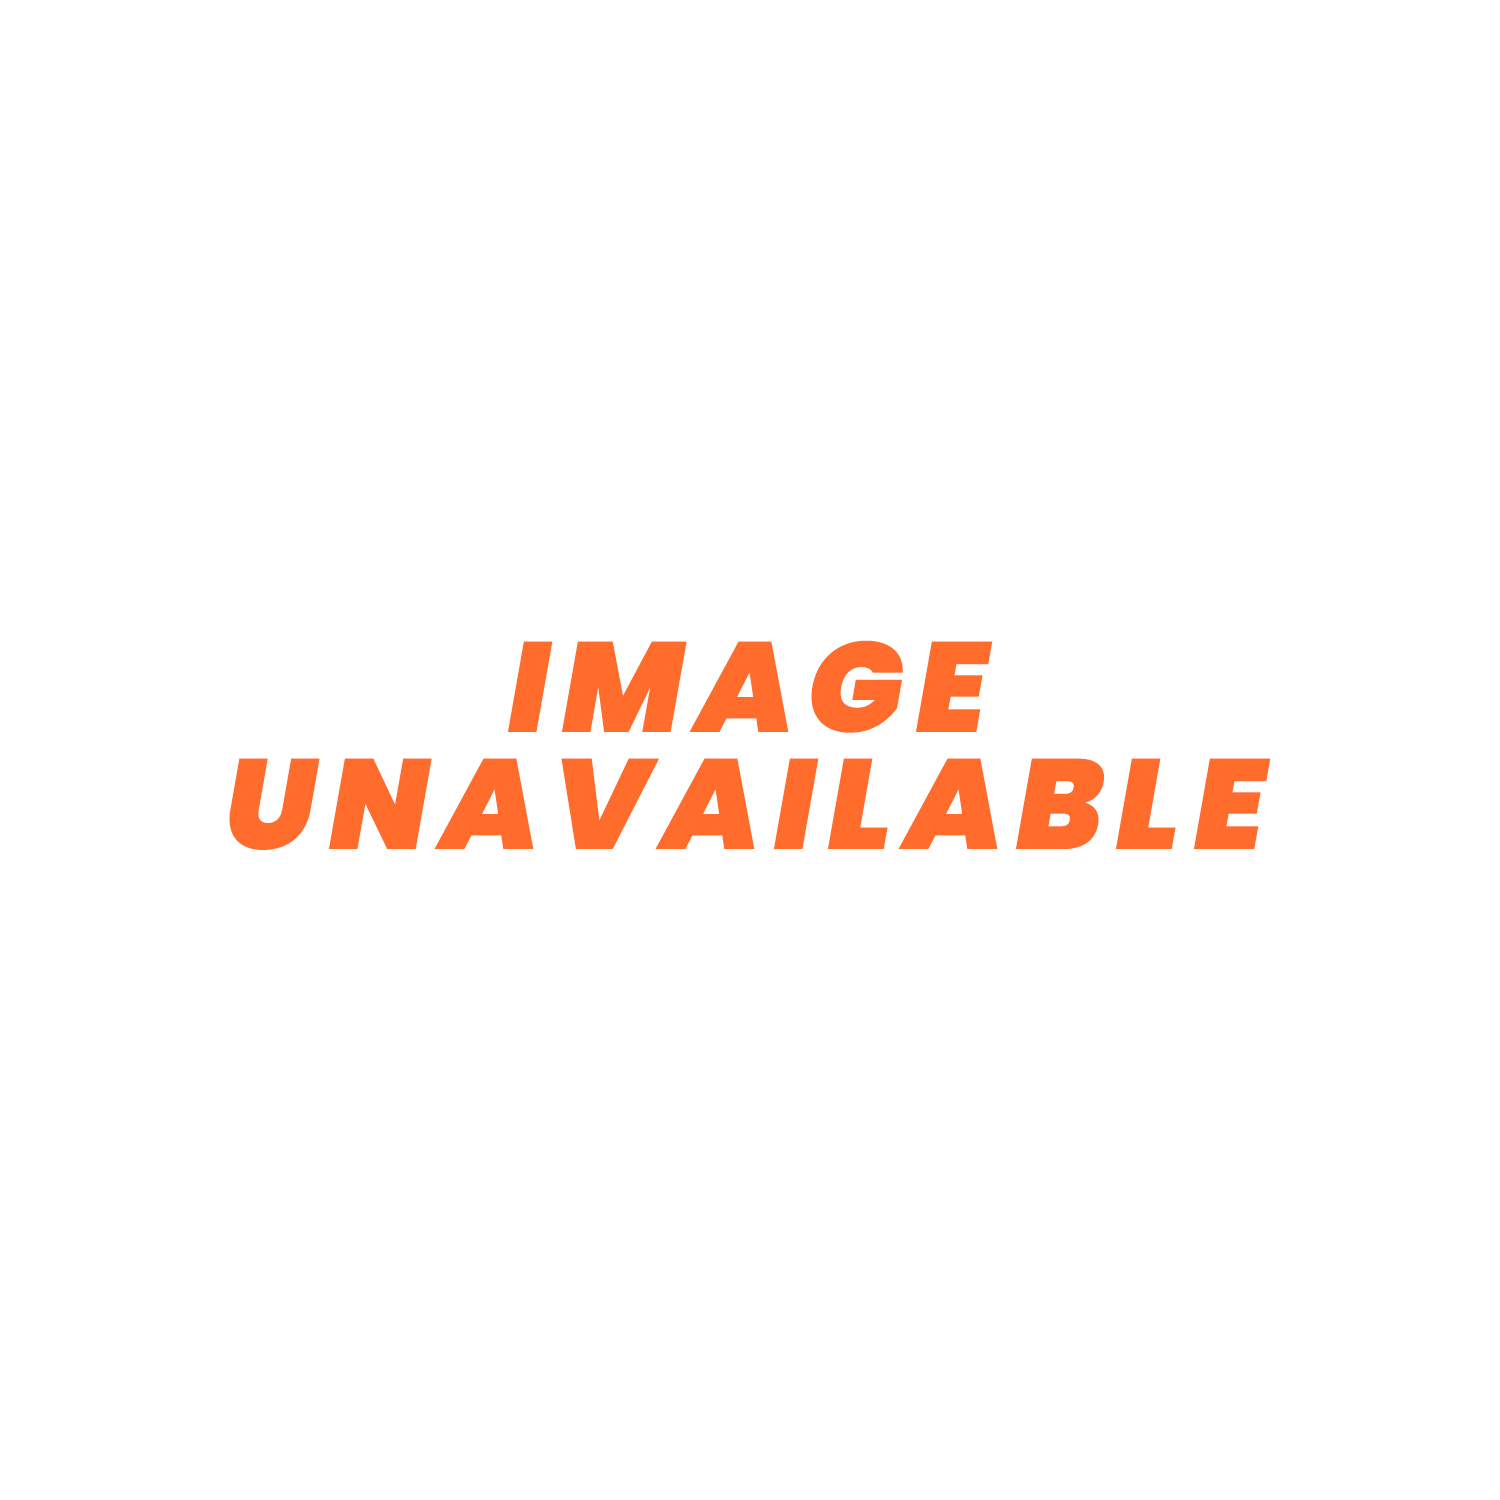 Jubilee 'O' Clip 304 Stainless Steel 15 - 18mm Dia Hose Clamp